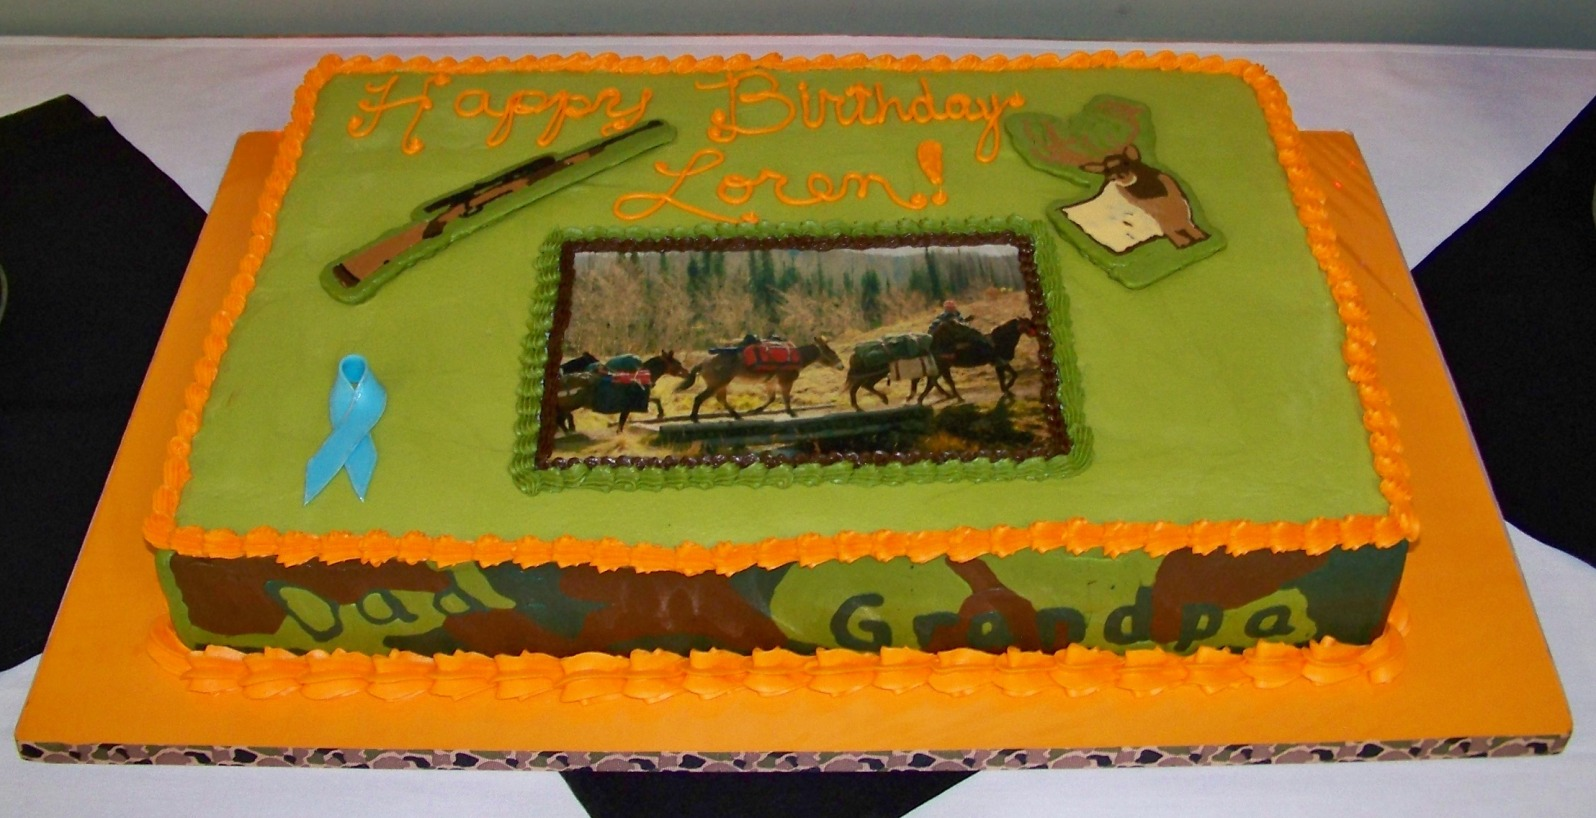 Hunting Themed Birthday Cake My Friends Husband Is Turning 70 Next Week She Wanted To Throw Him A Surprise Party As He Recent Survivor Of